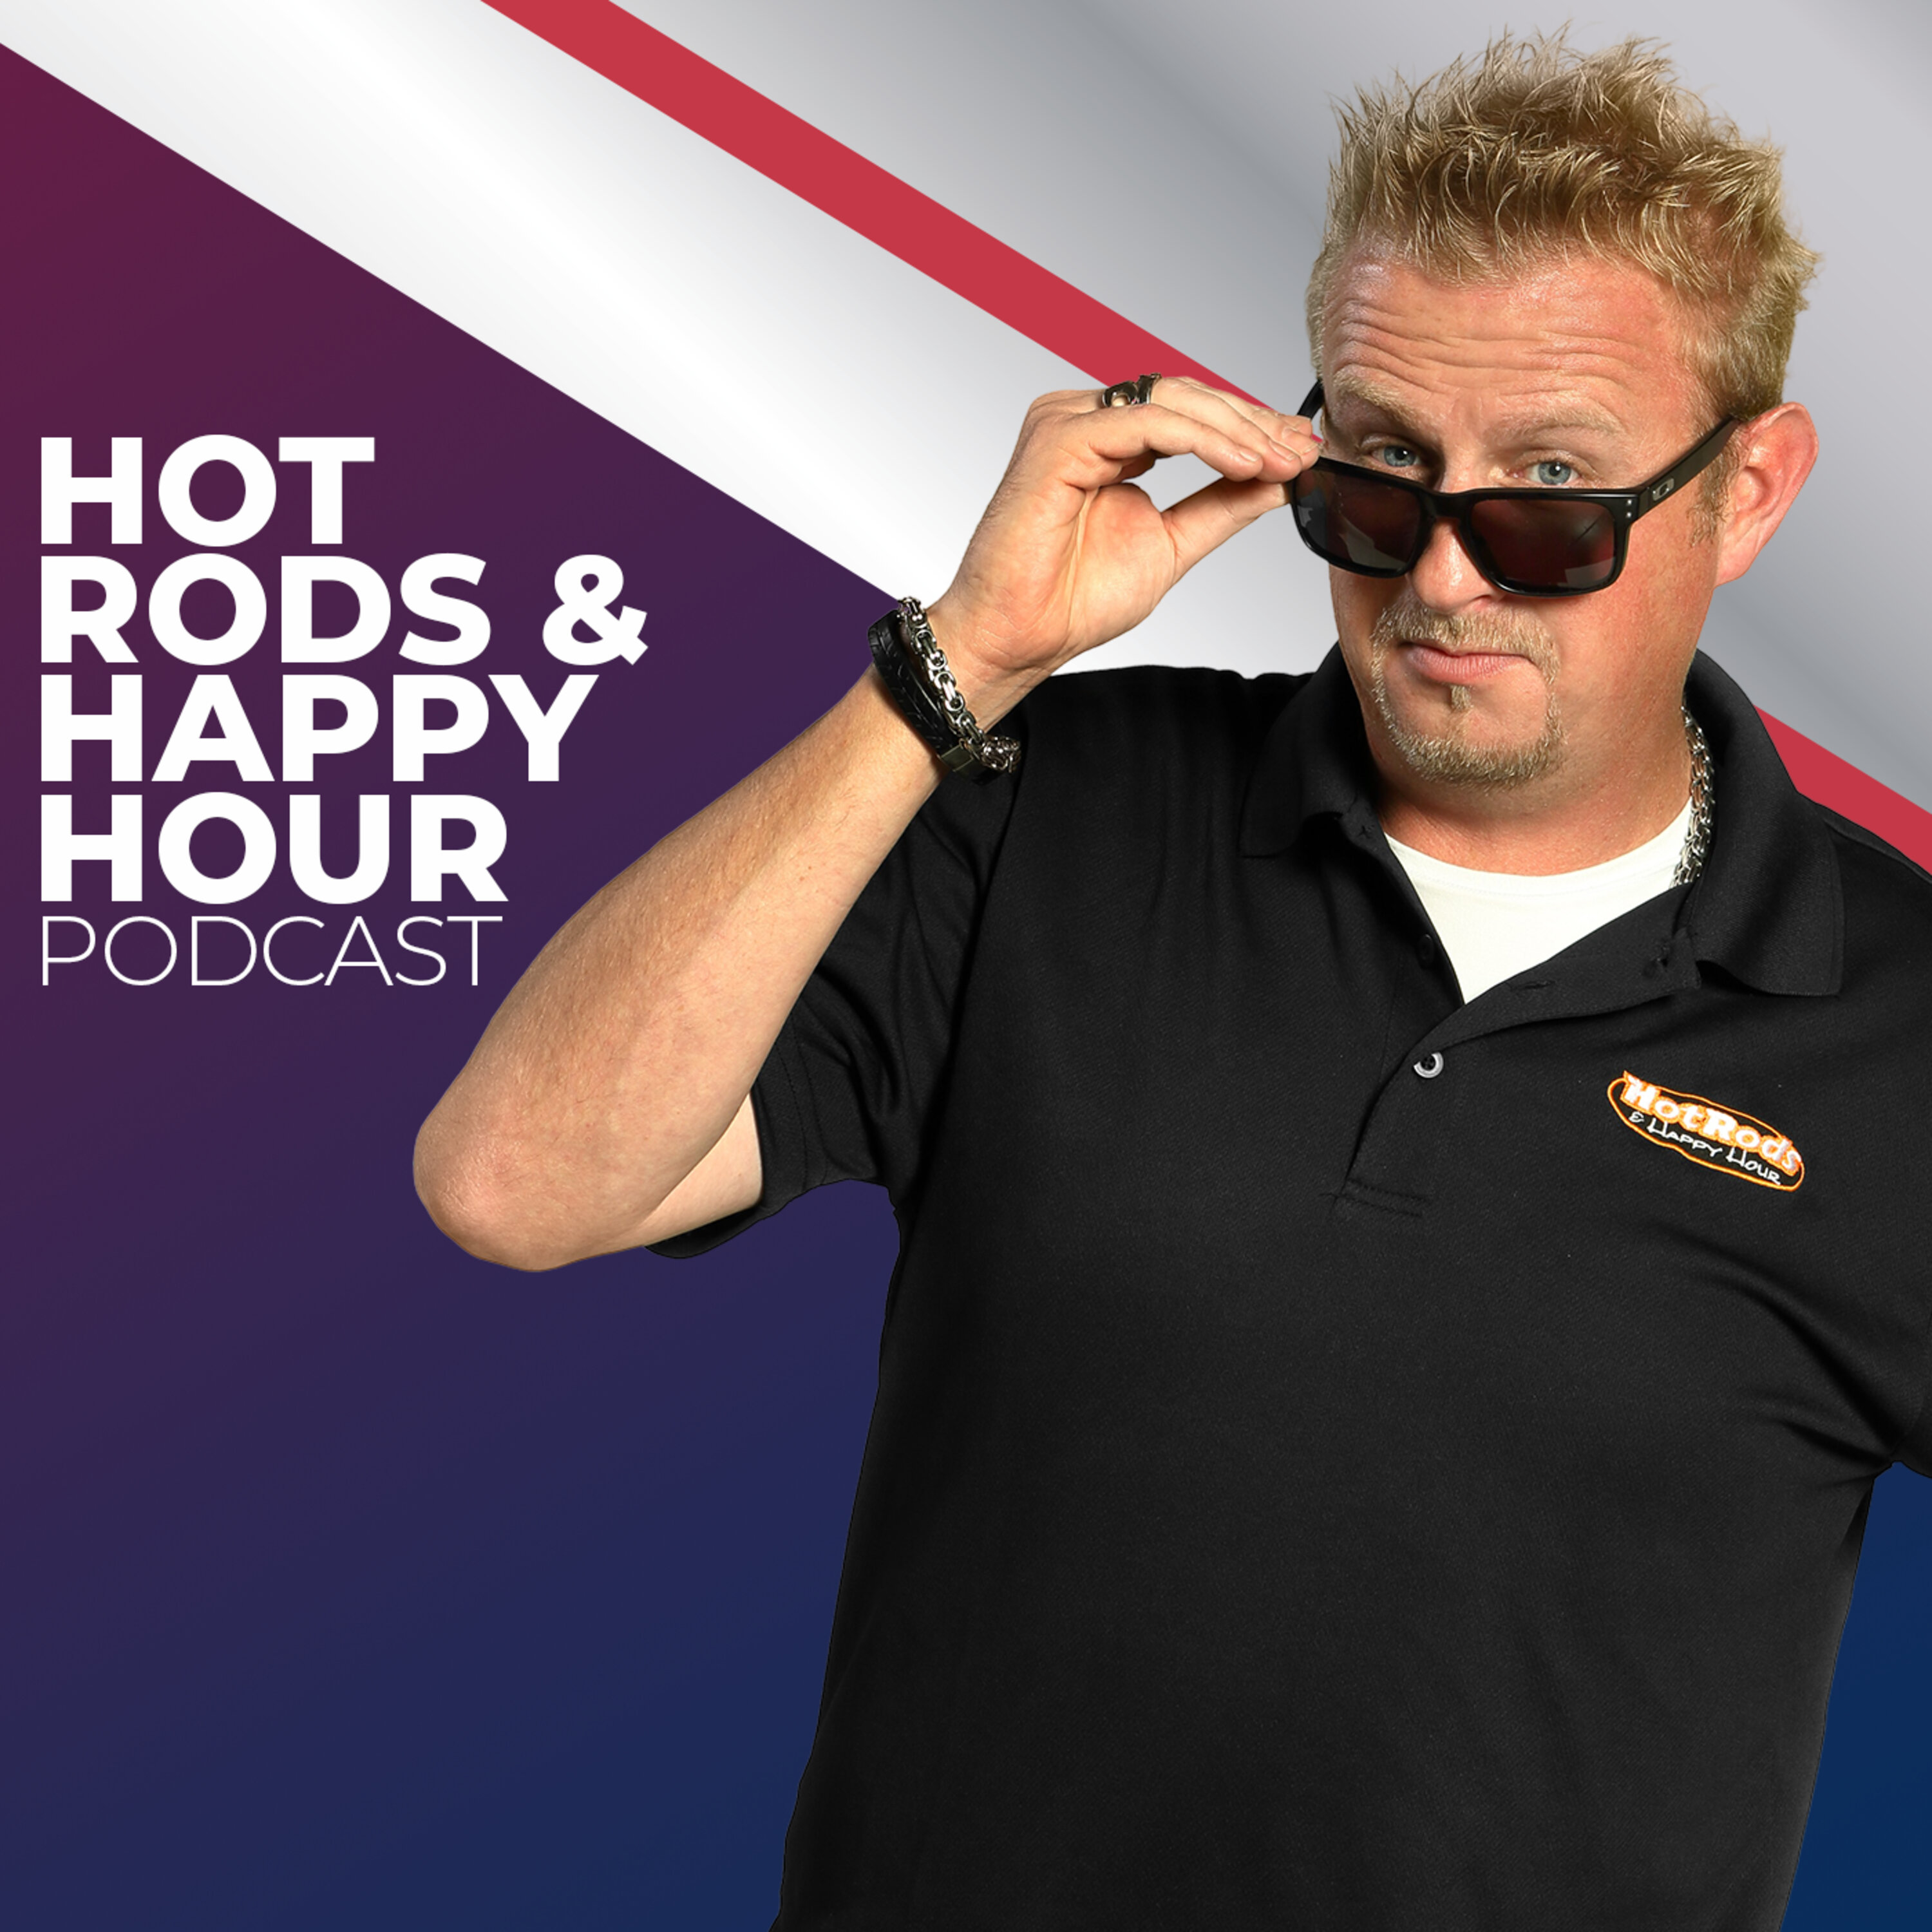 HOT RODS 8 11 19 HOUR 1